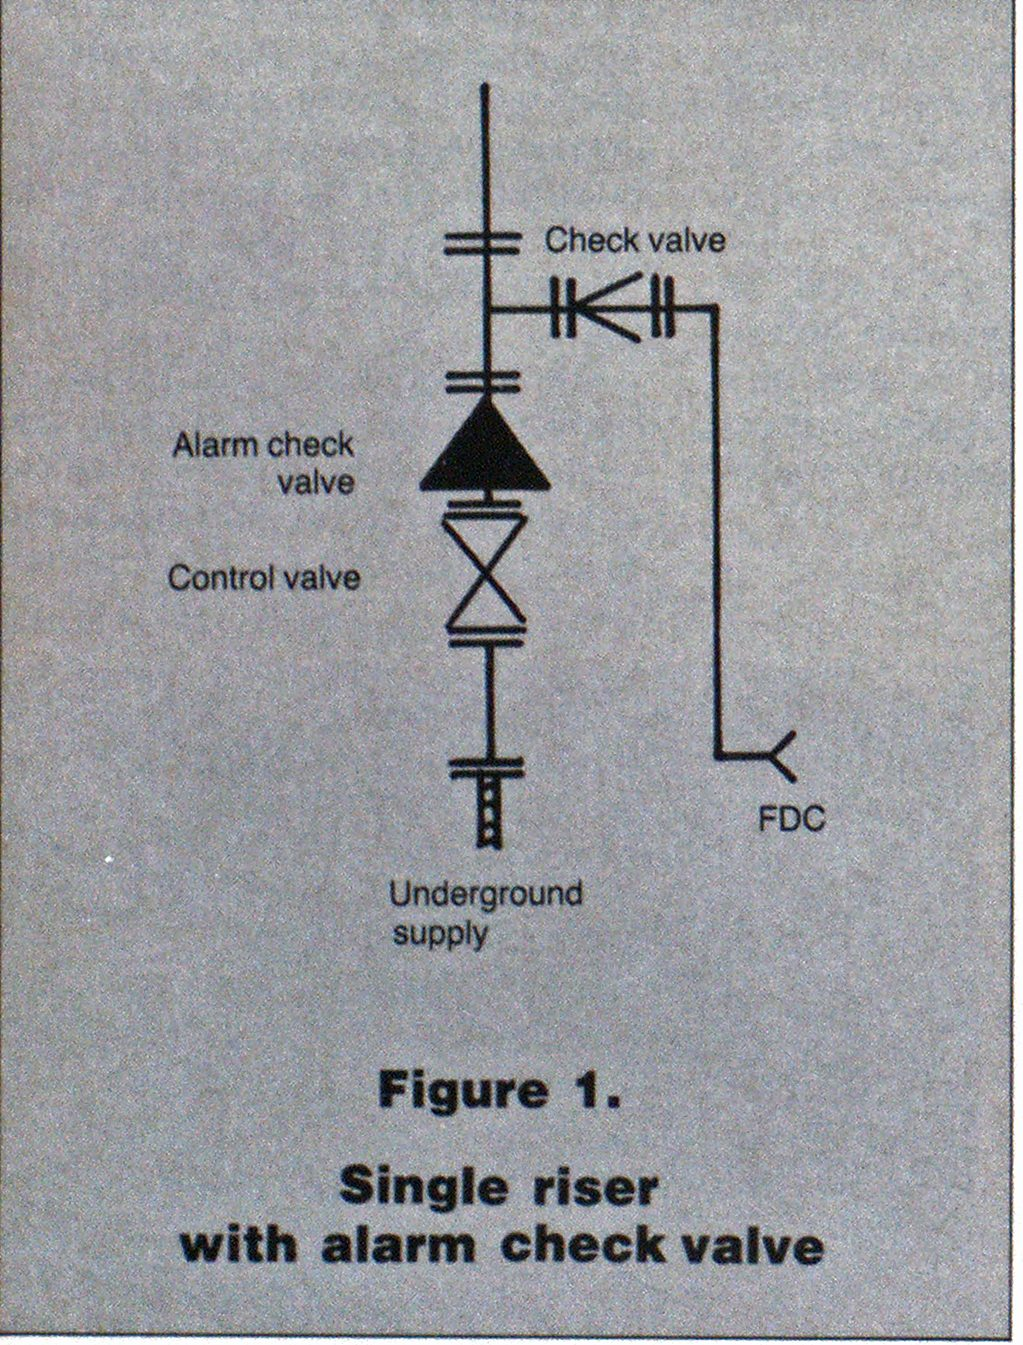 Figure 1. Single riser with alarm check valve